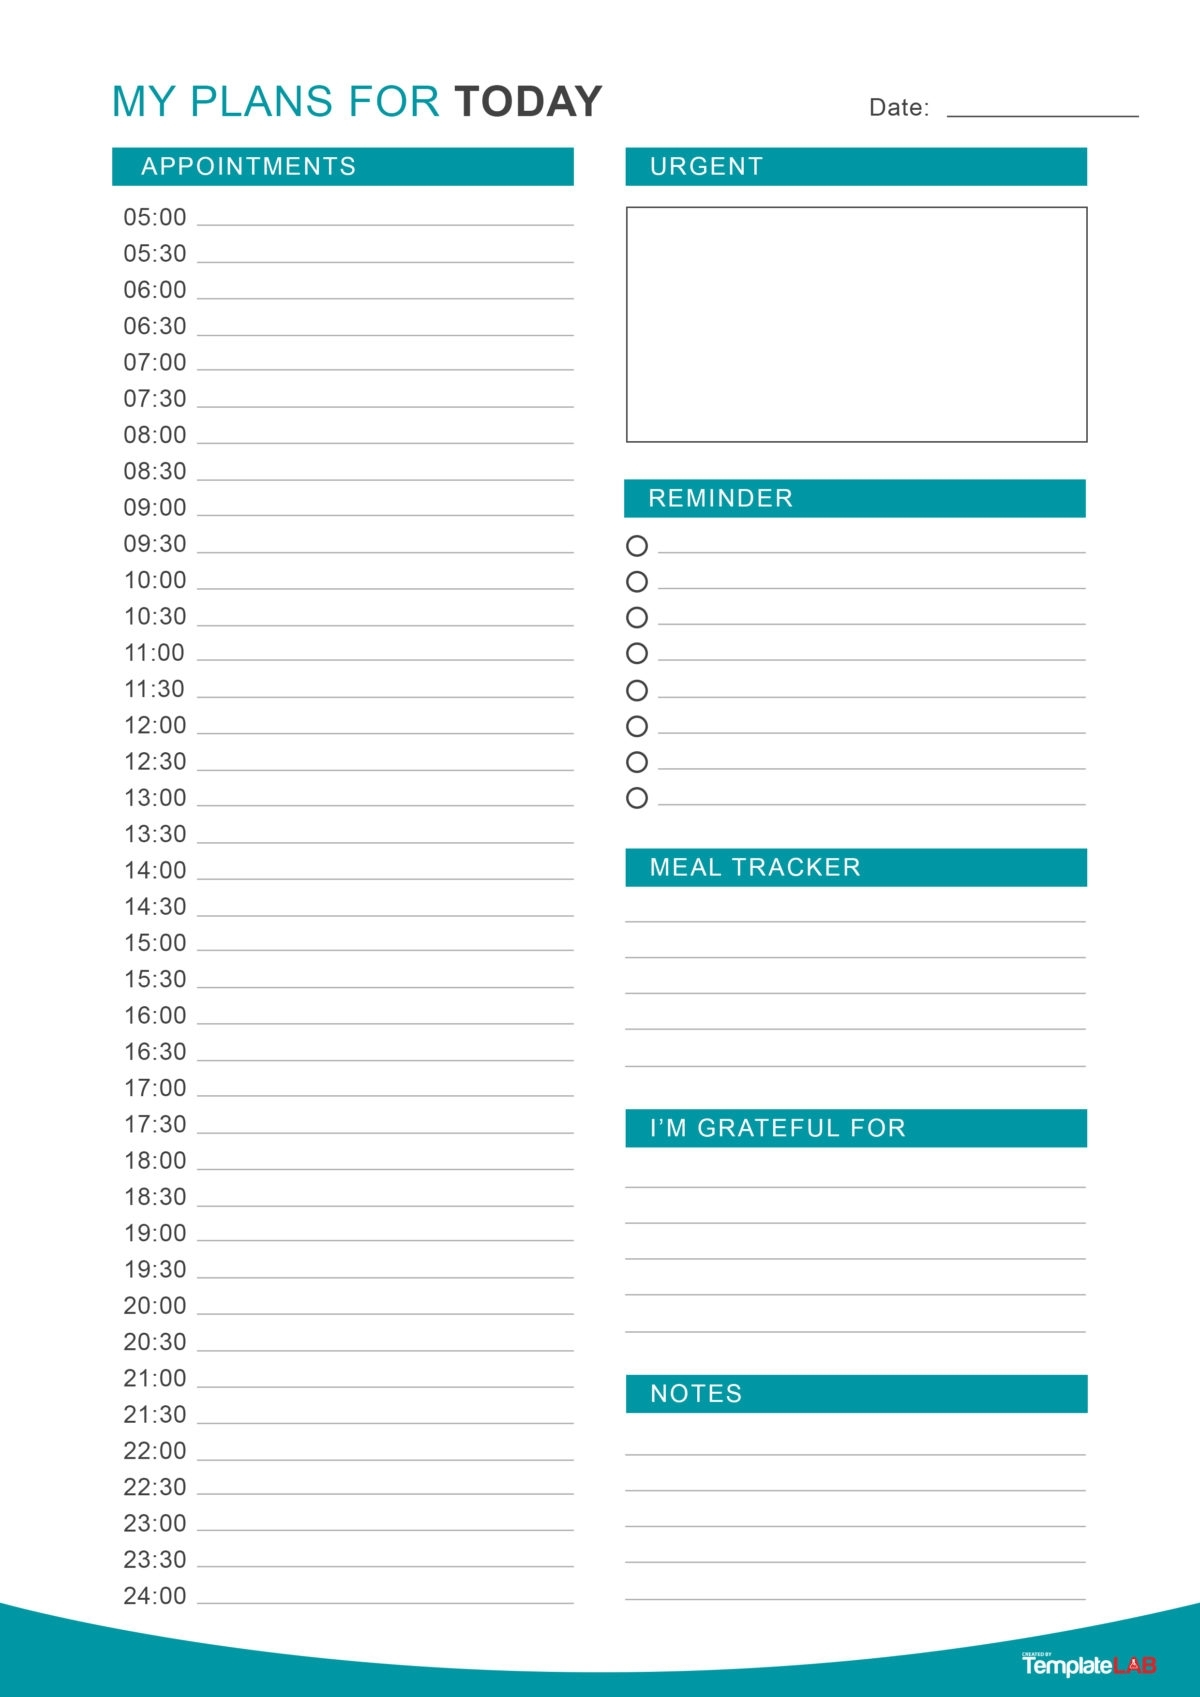 47 Printable Daily Planner Templates (Free In Word/Excel/Pdf) throughout Daily Schedule Printable Template Classroom